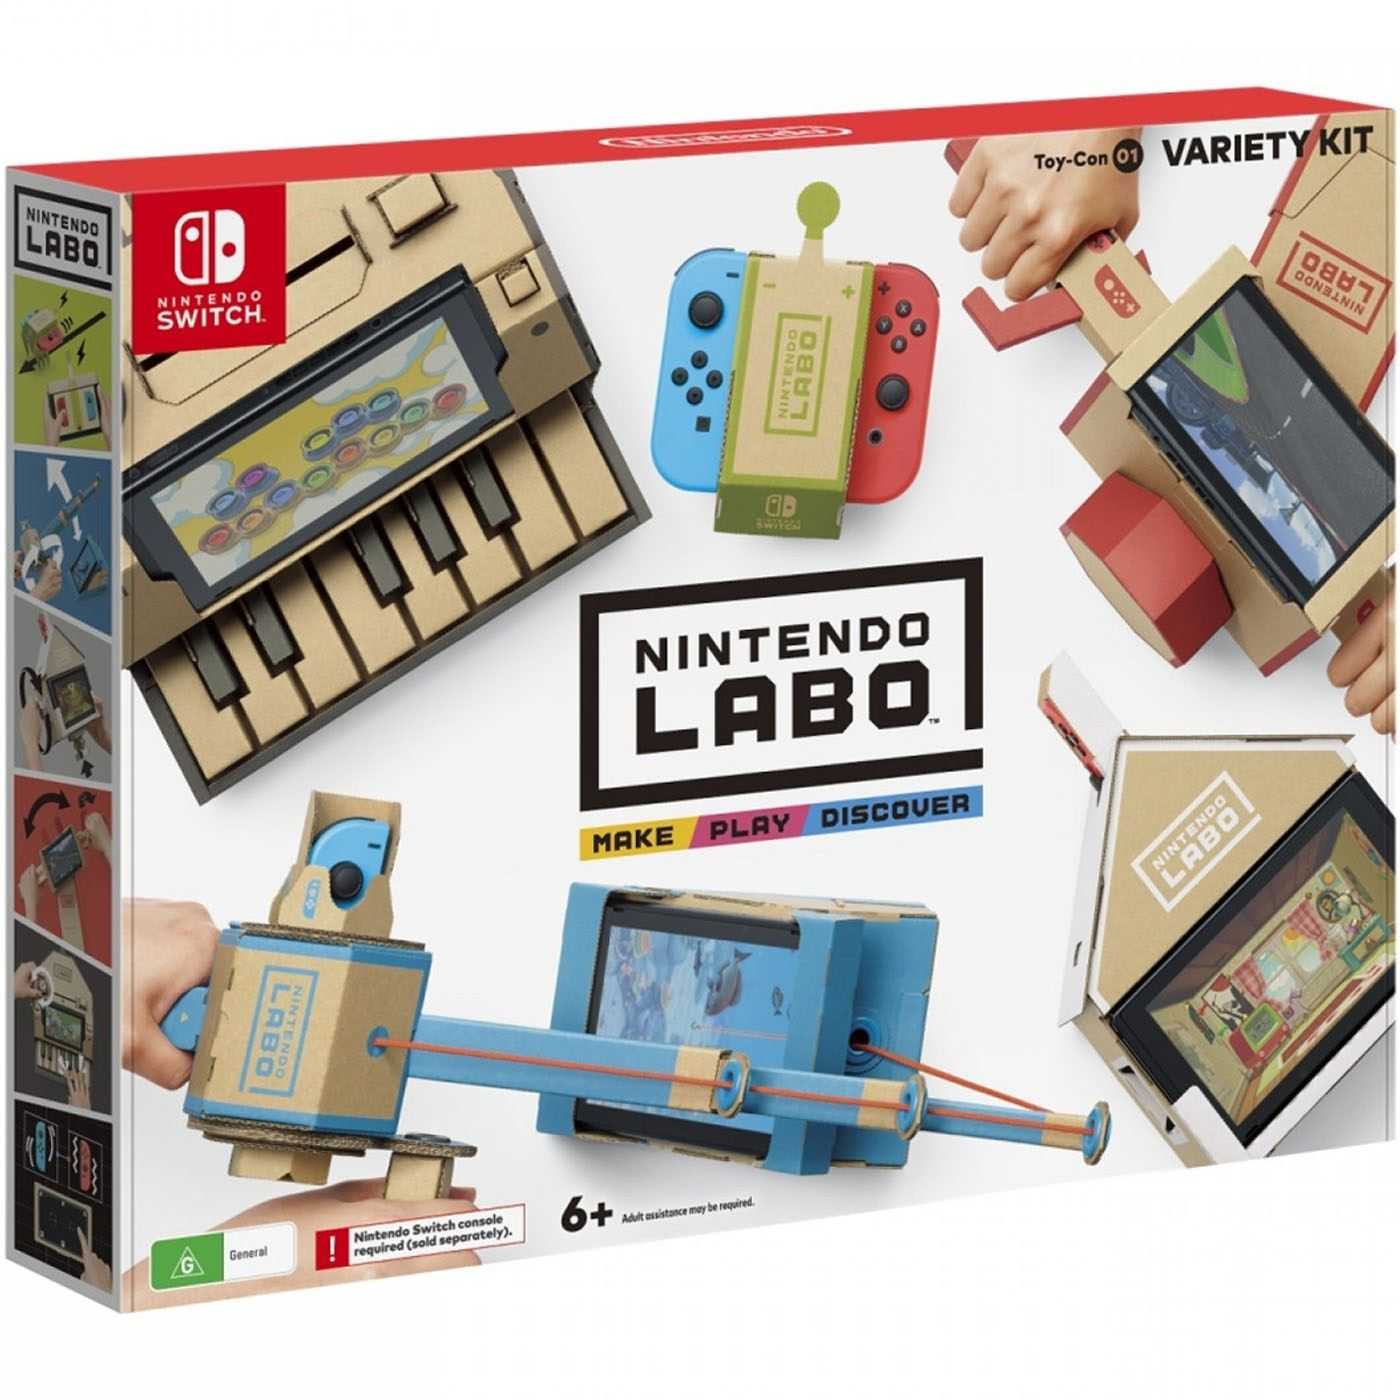 Nintendo Labo Variety Kit - Switch